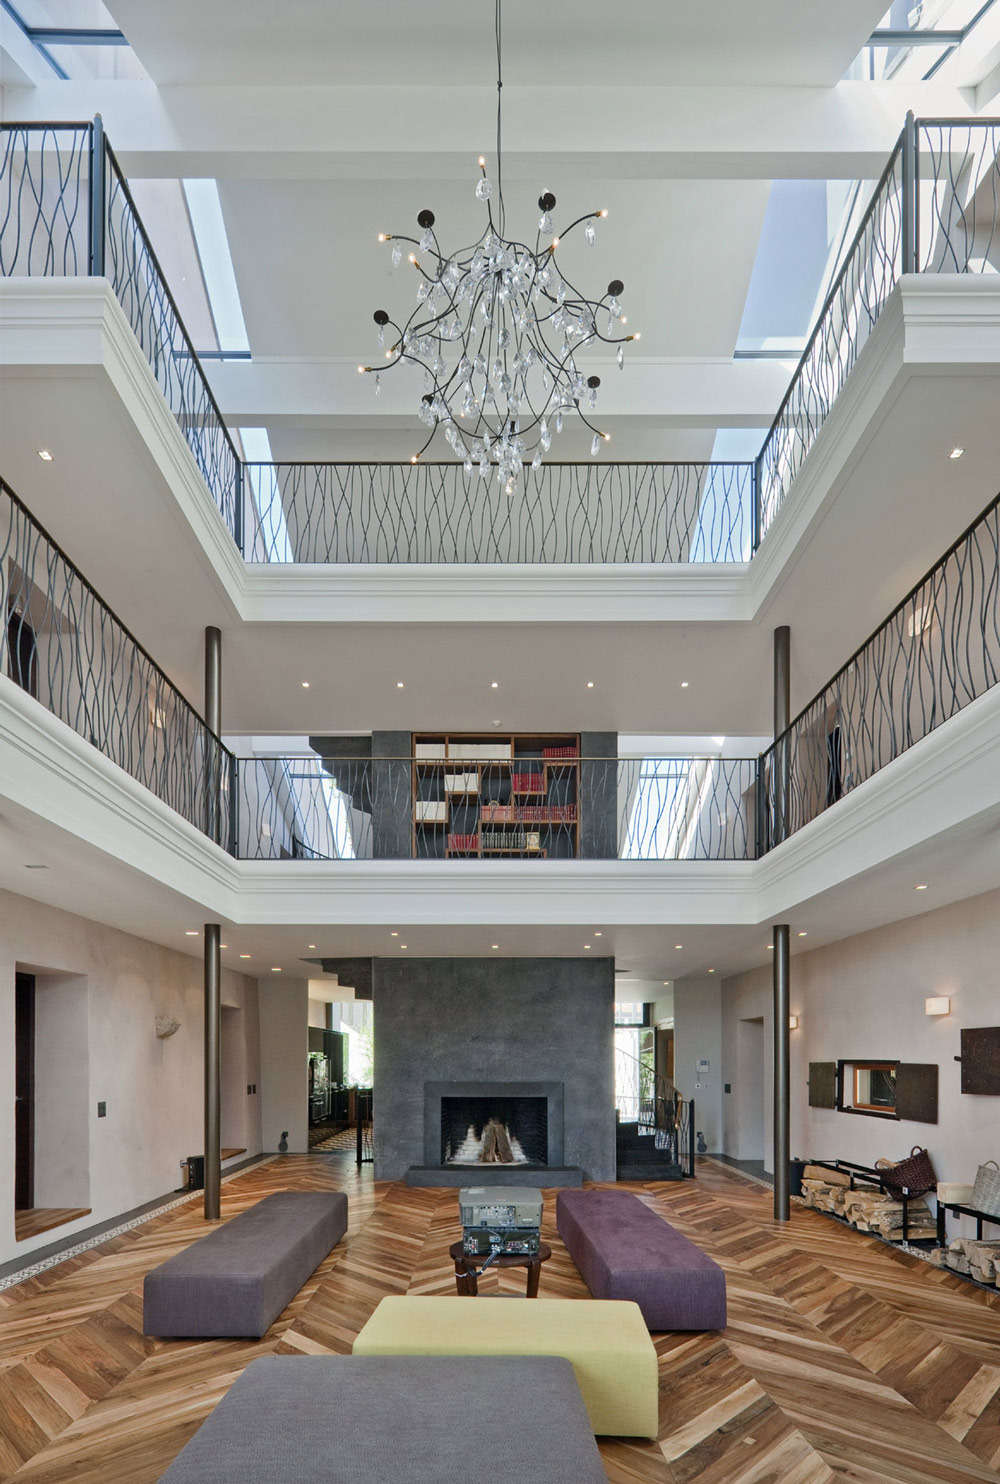 Living Room High Ceilings Fireplace Farmhouse Conversion in Genf Switzerland